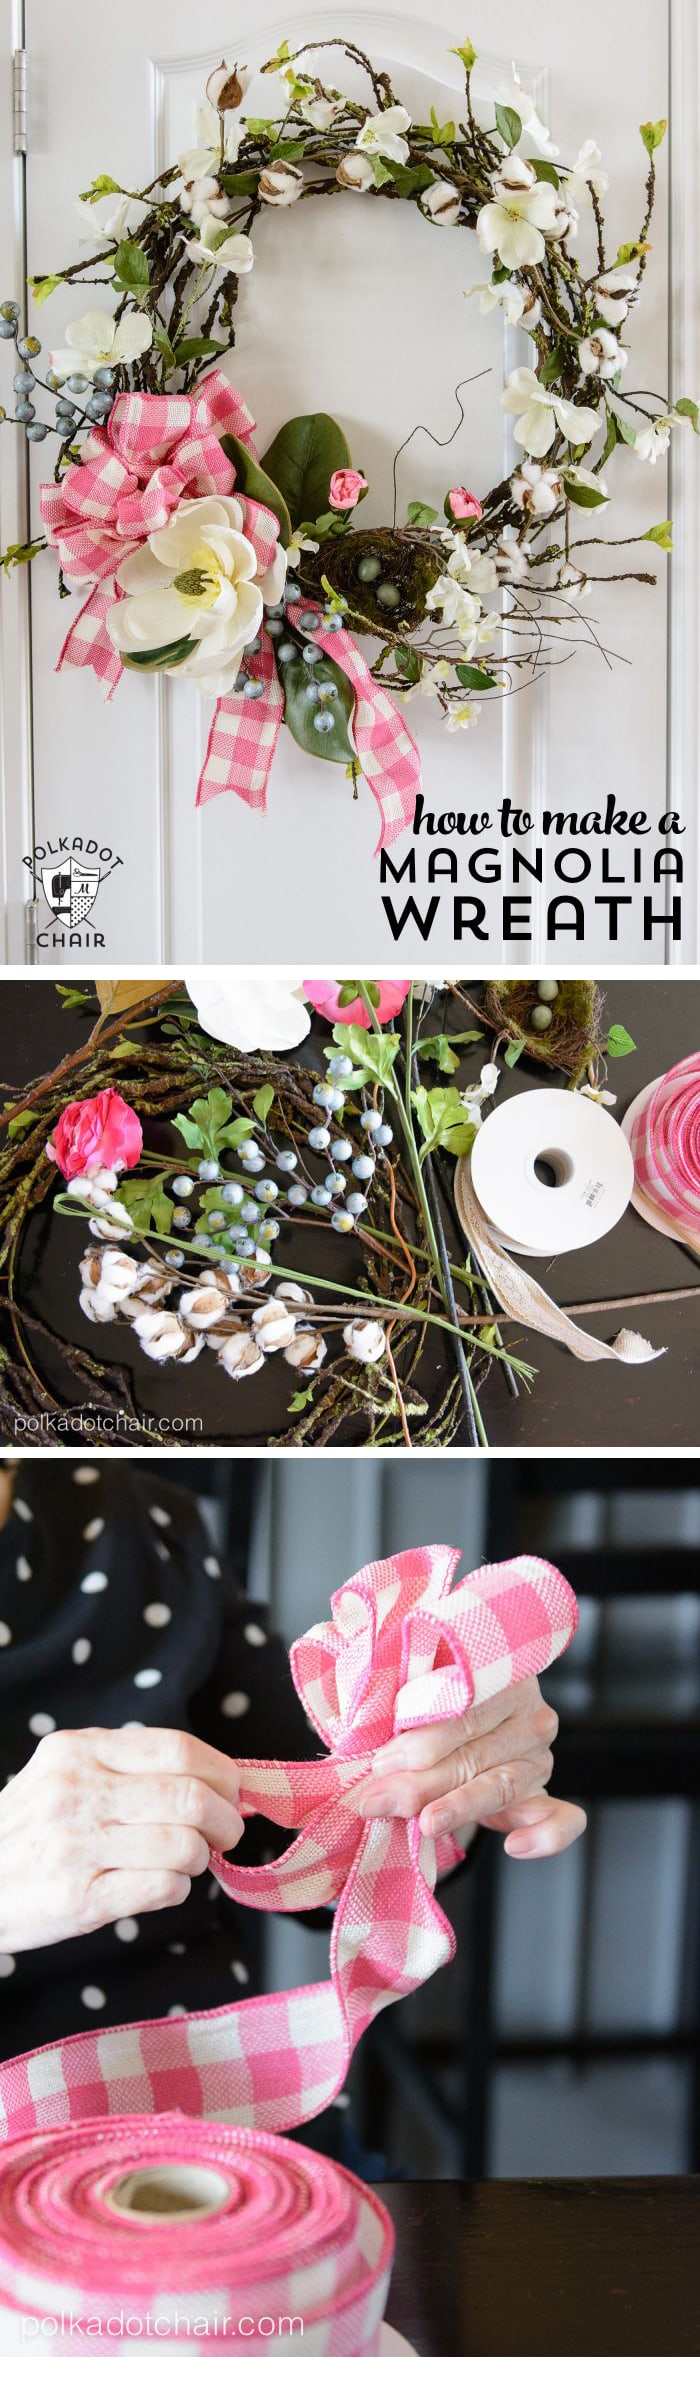 Make A Spring Wreath For Your Front Door With This DIY Magnolia Wreath  Tutorial. #